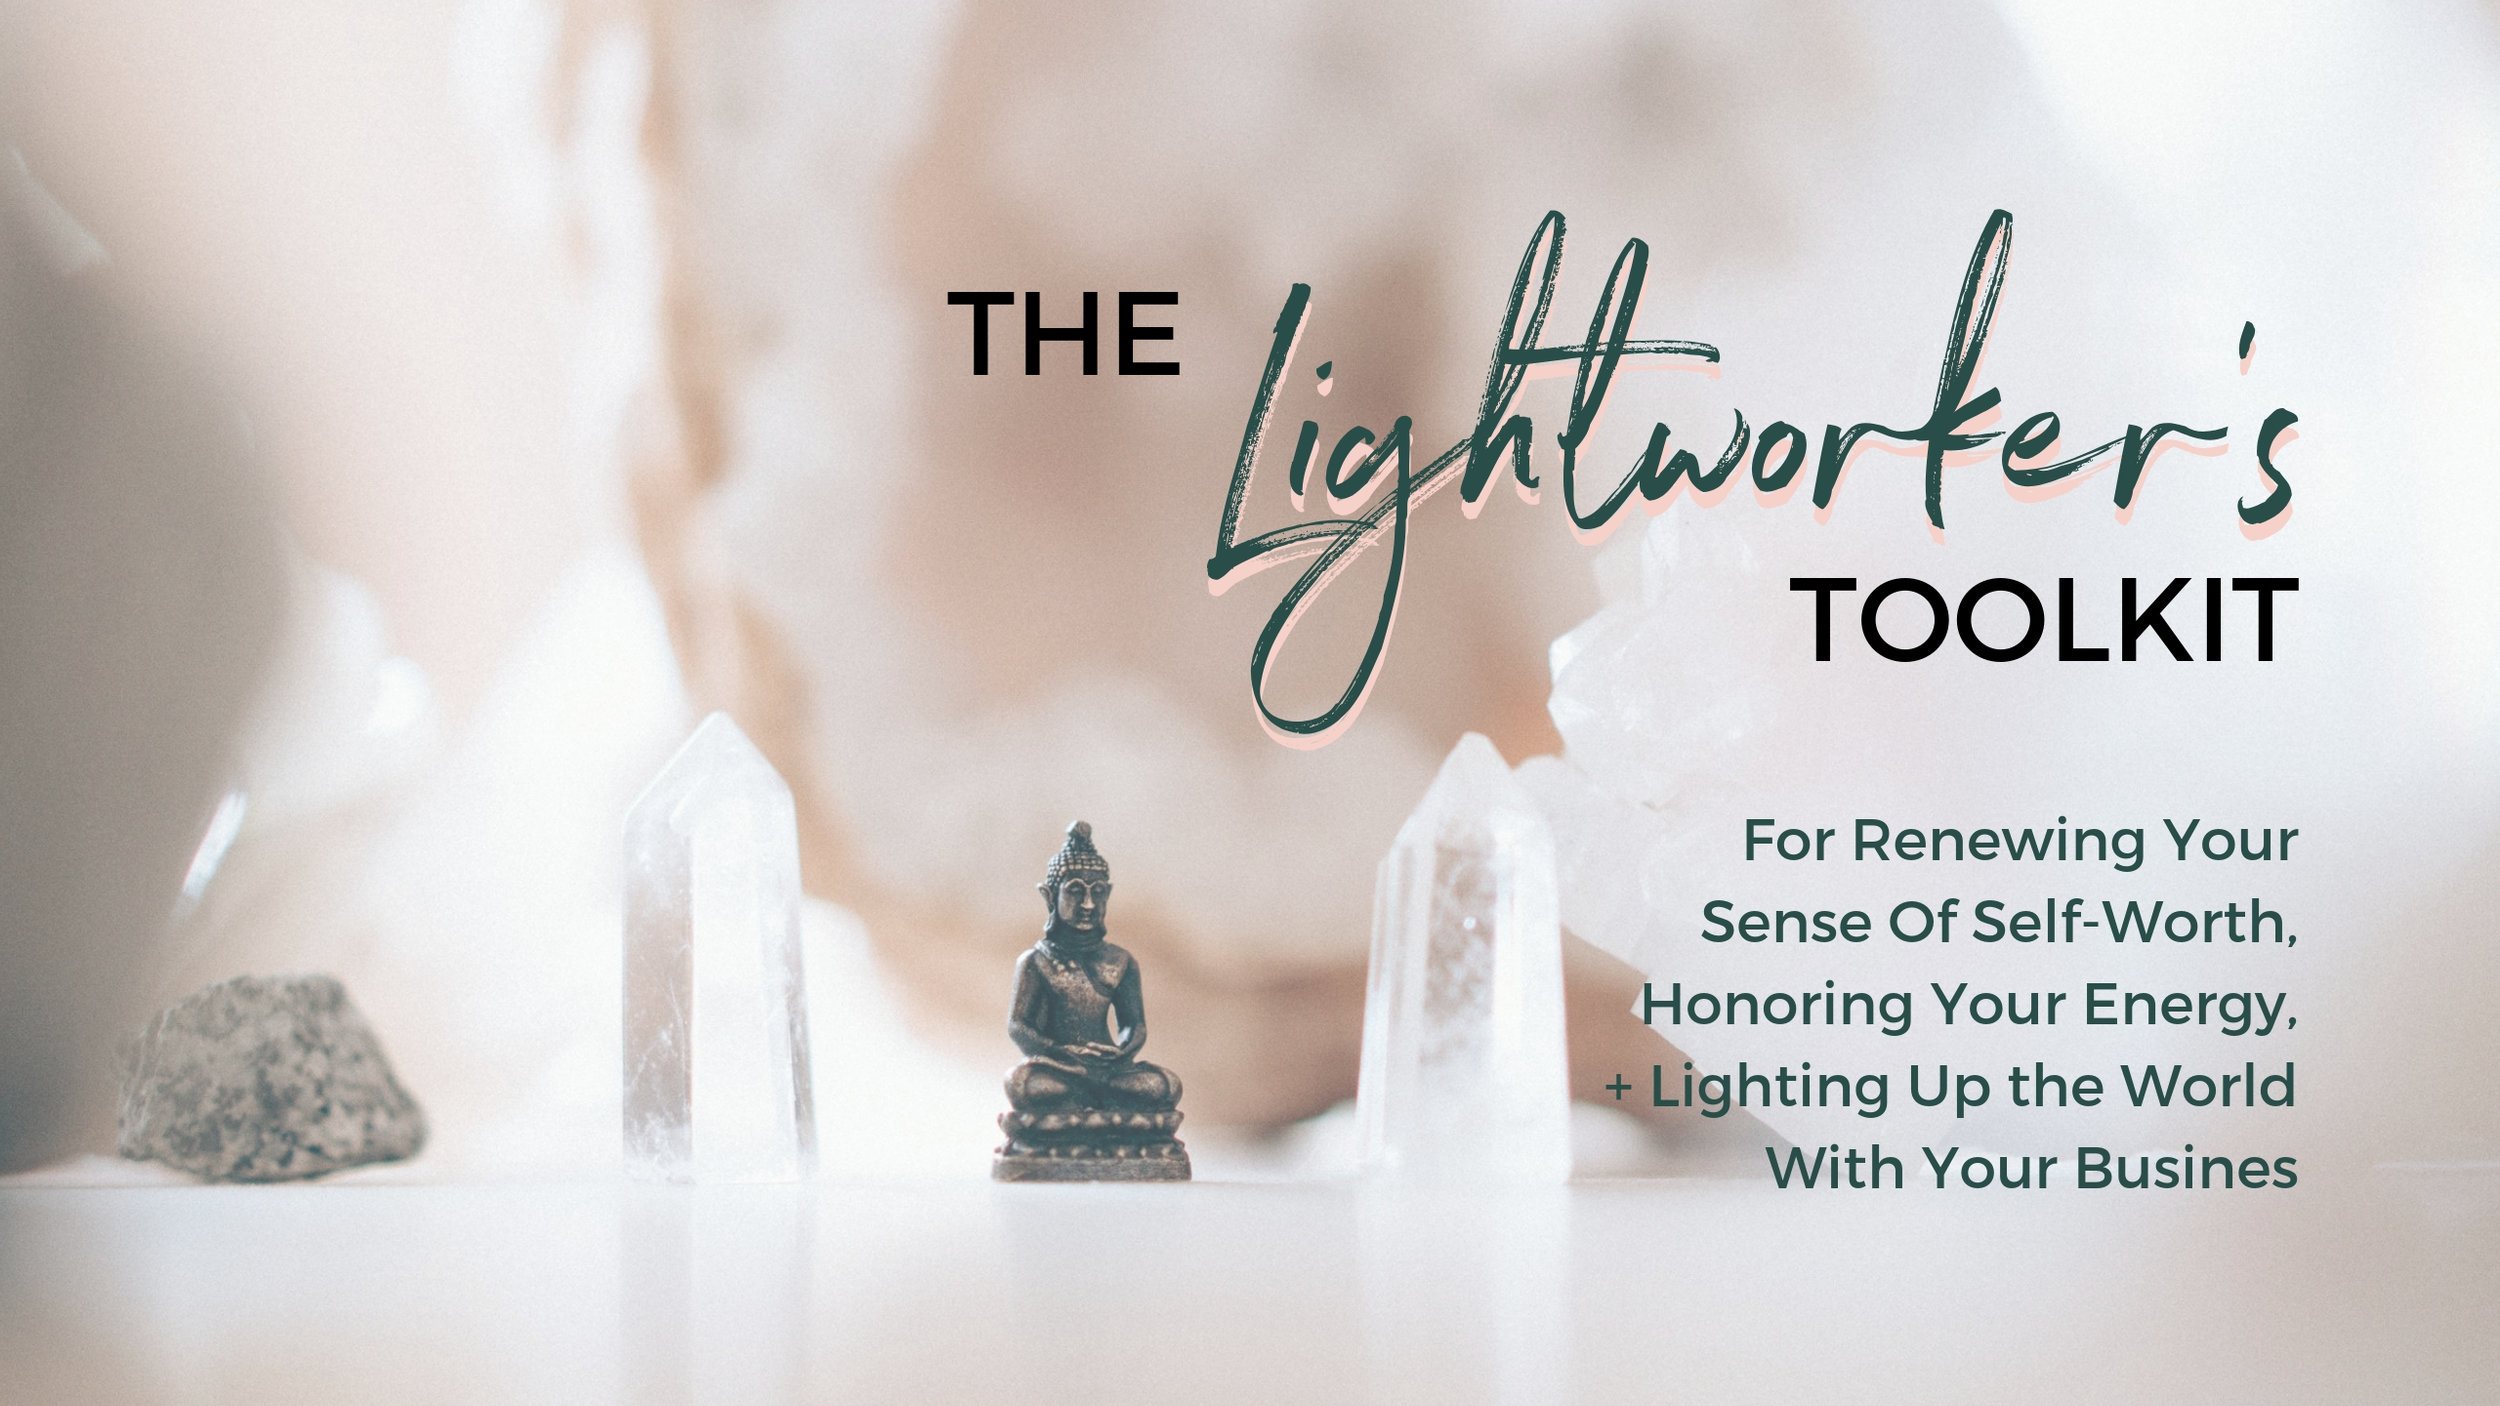 Lightworkers Toolkit Image.jpg